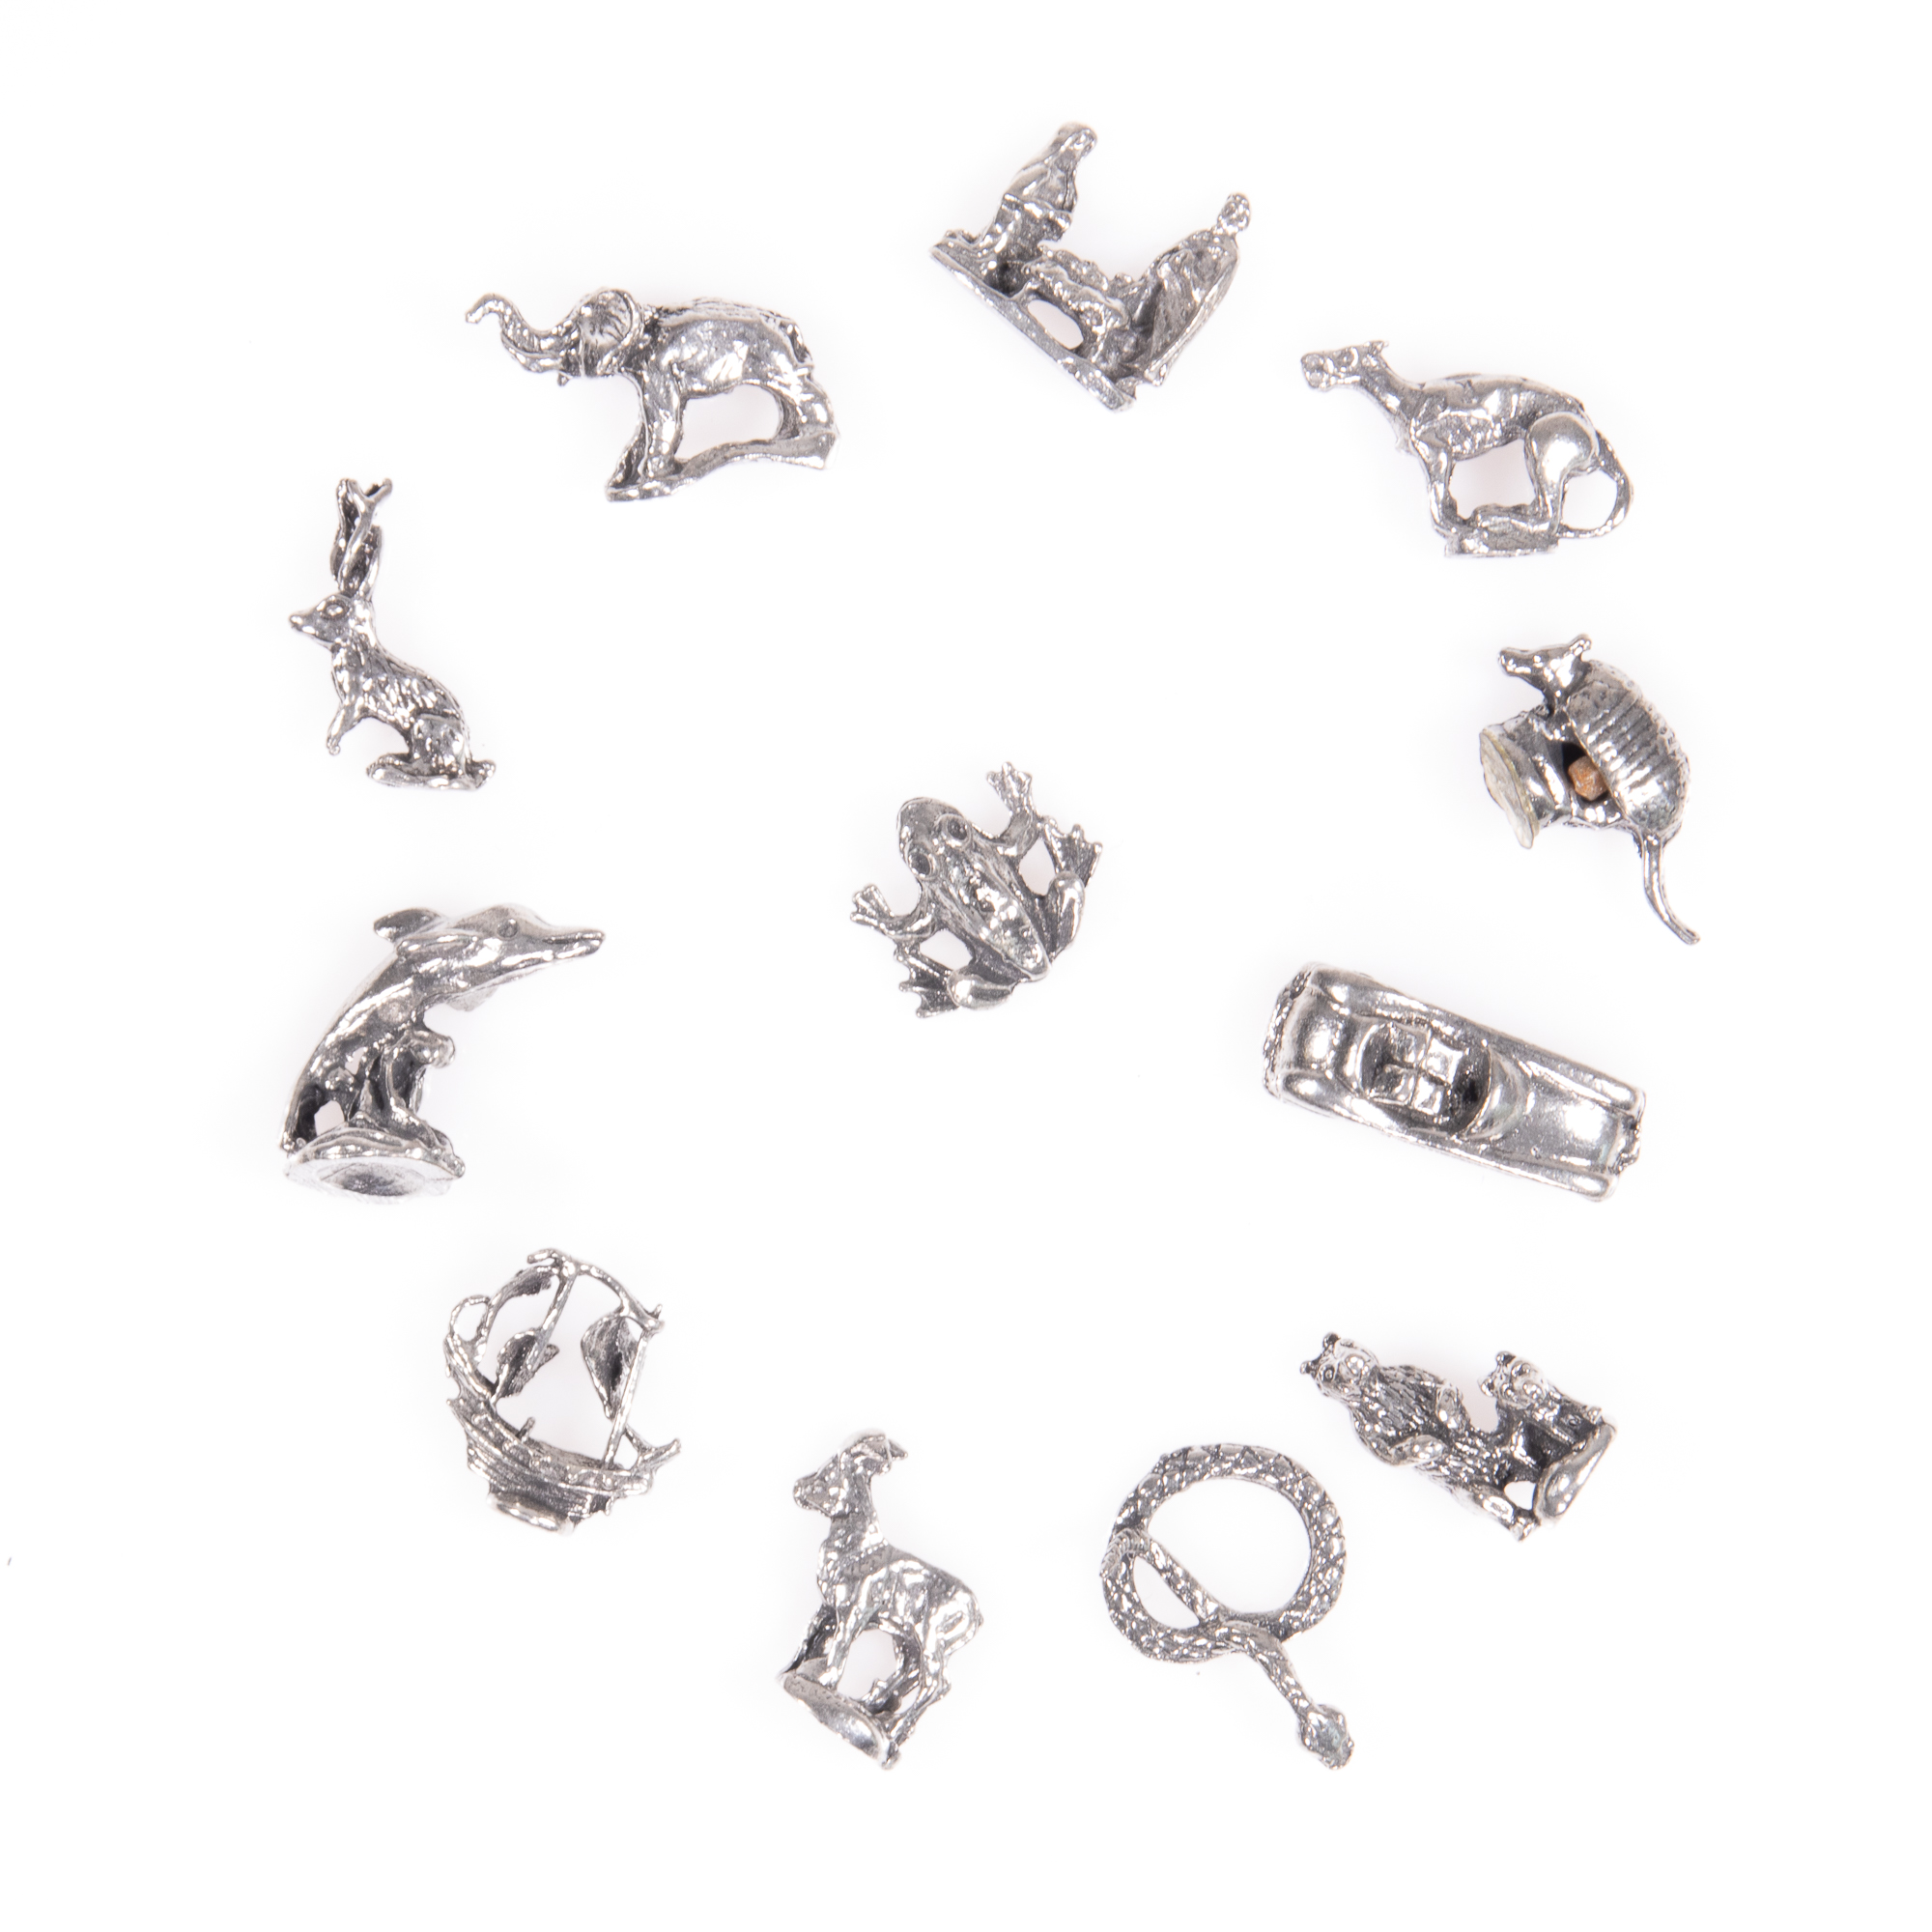 Selection of 12x Silver Novelty Charms - Image 5 of 6